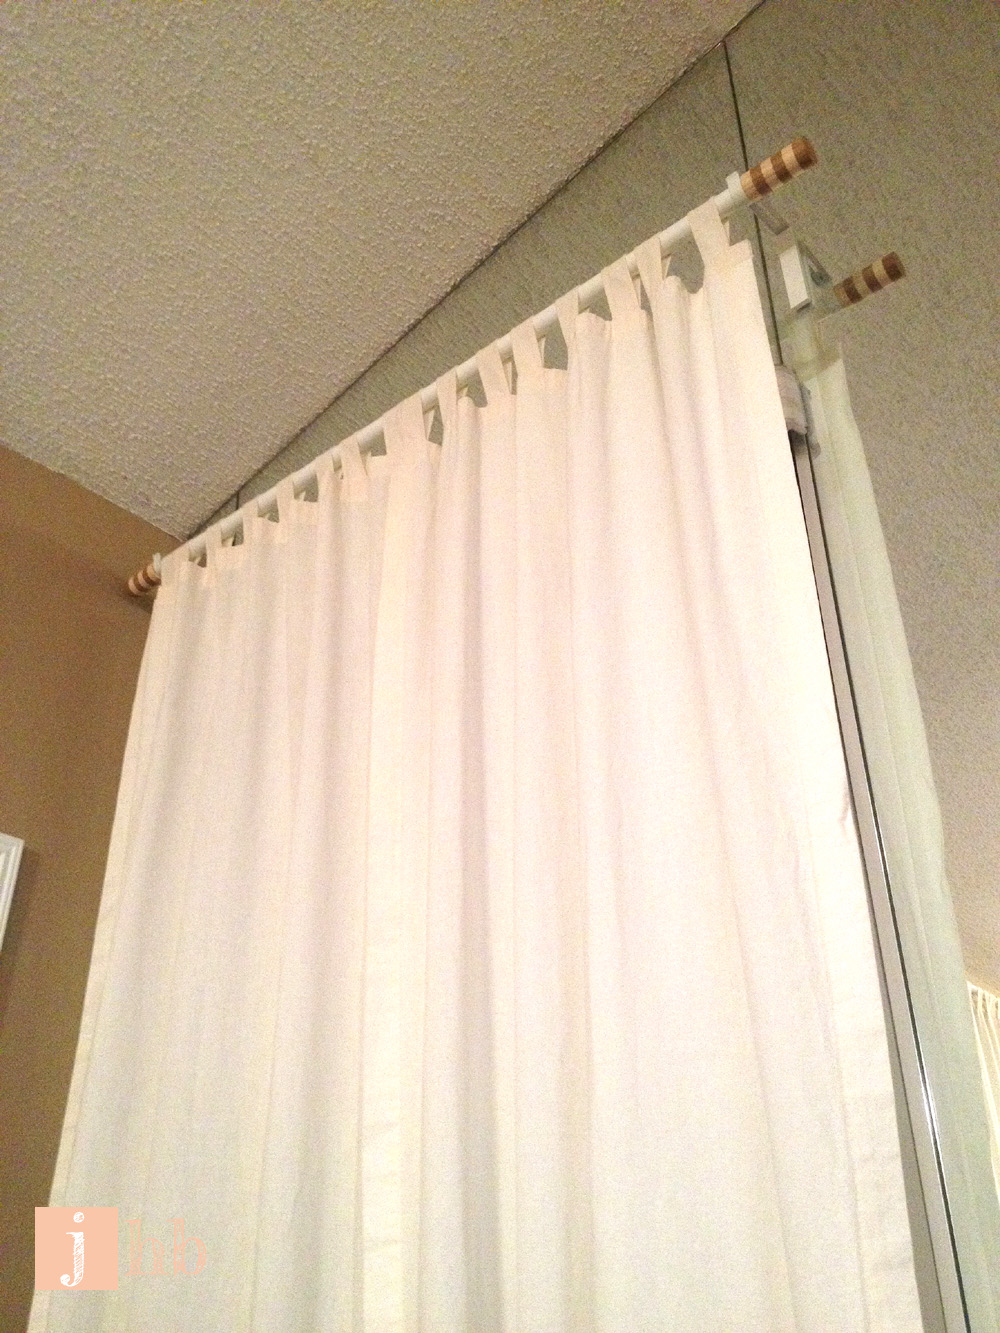 Hang Curtains Without Drilling Holes Jamie's Home Blog